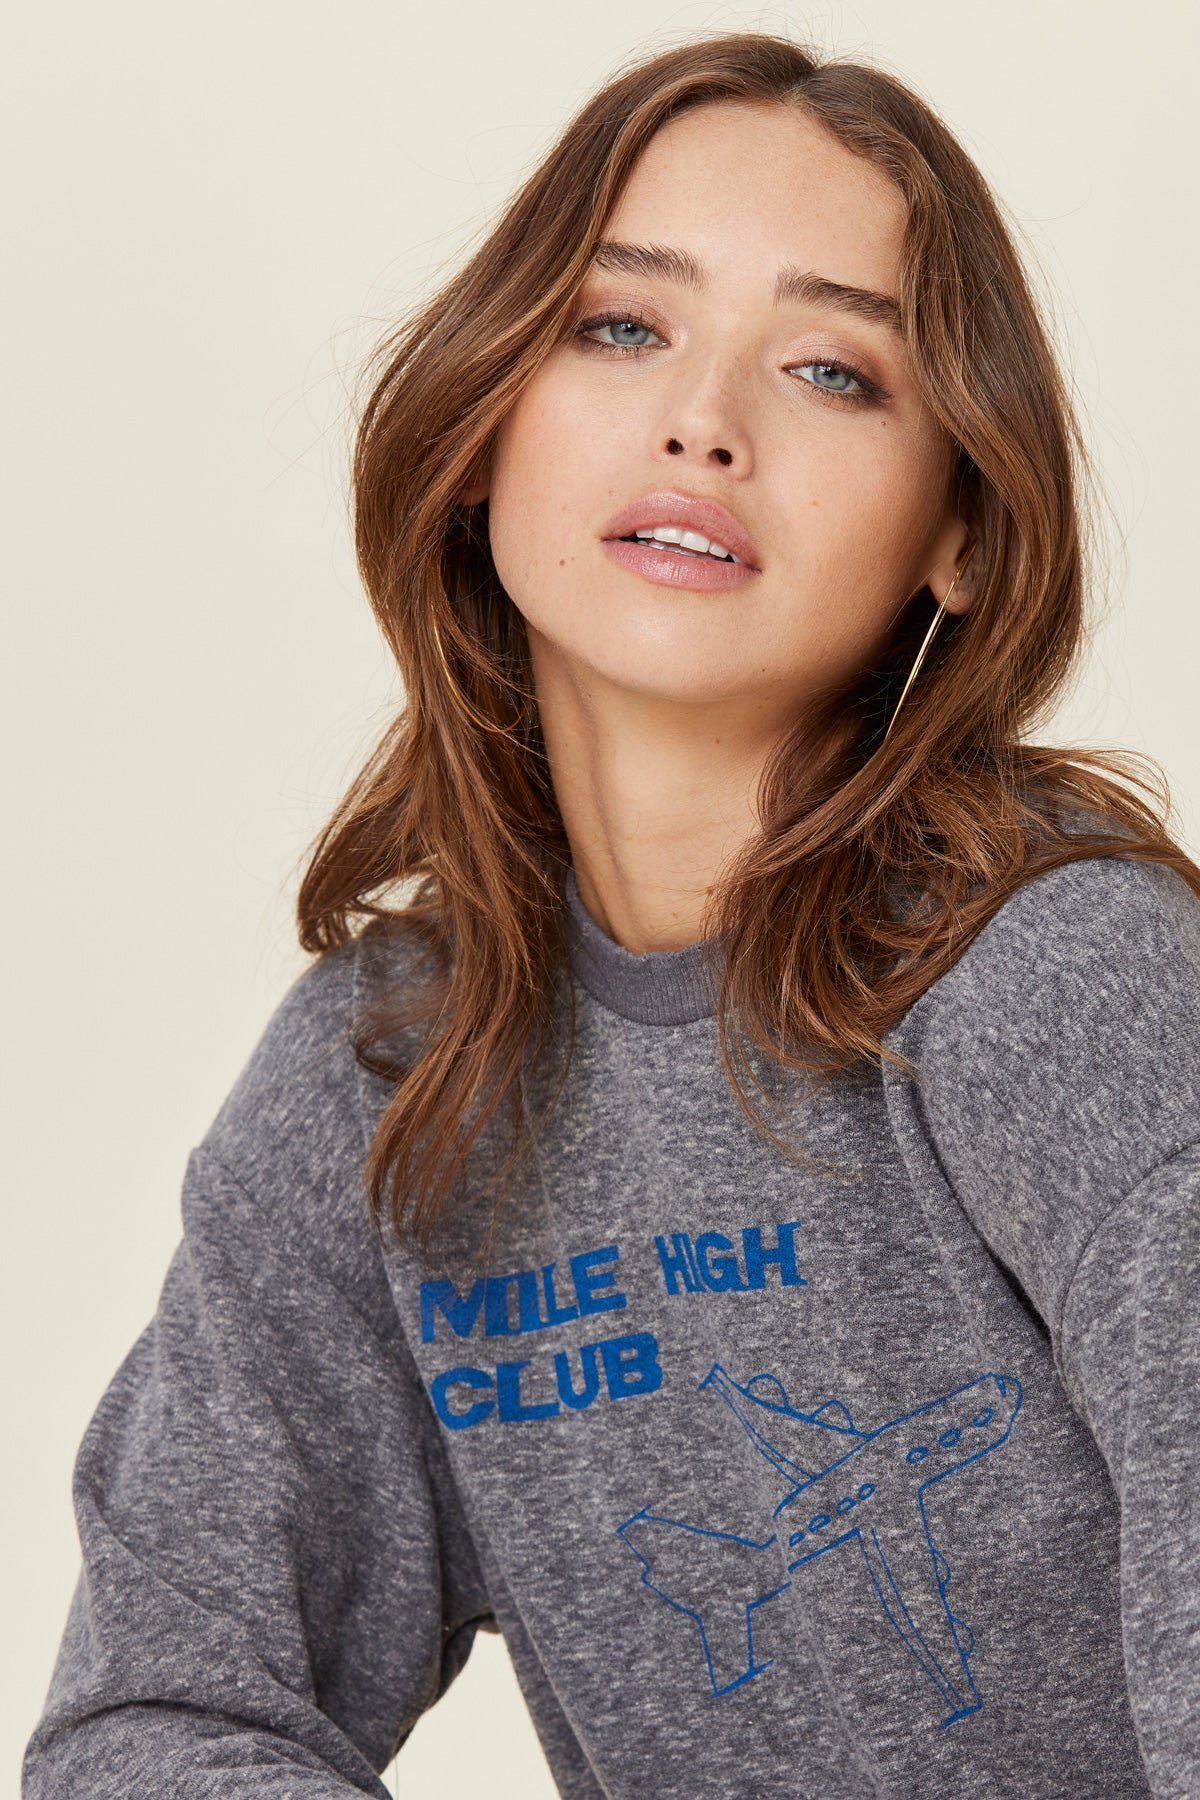 LNA Mile High Club Sweatshirt Grey